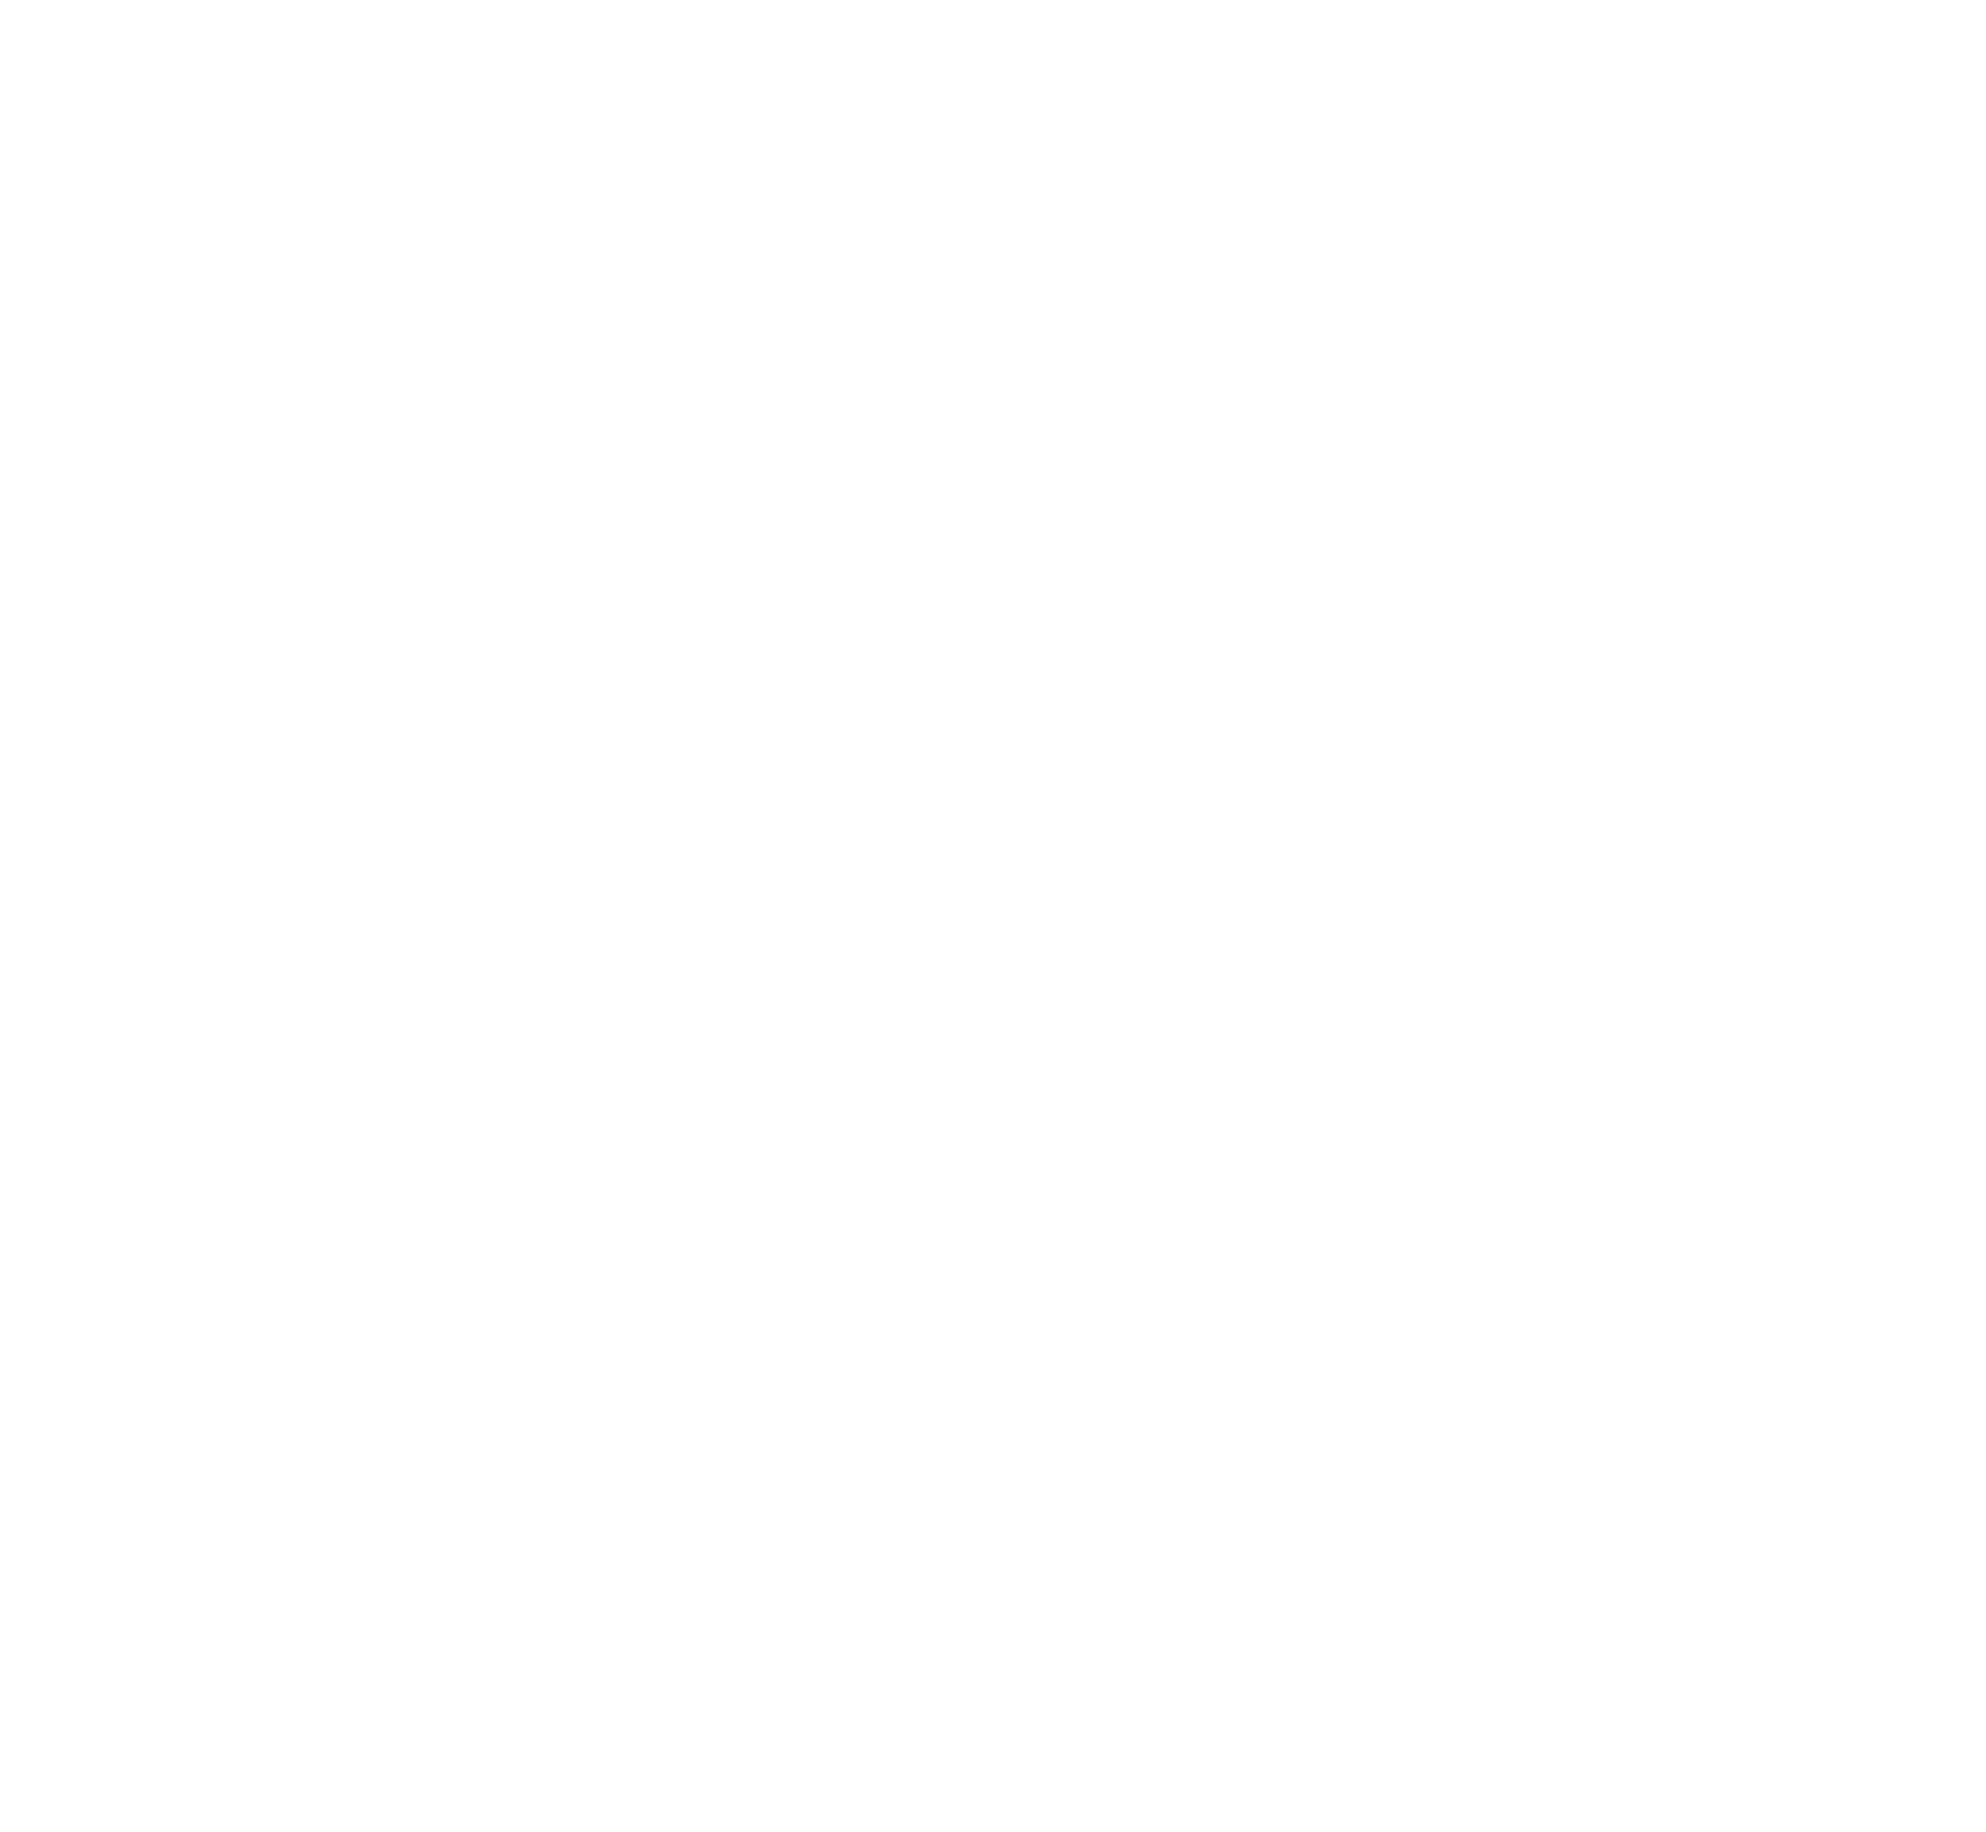 The GLBT Community Center of Colorado